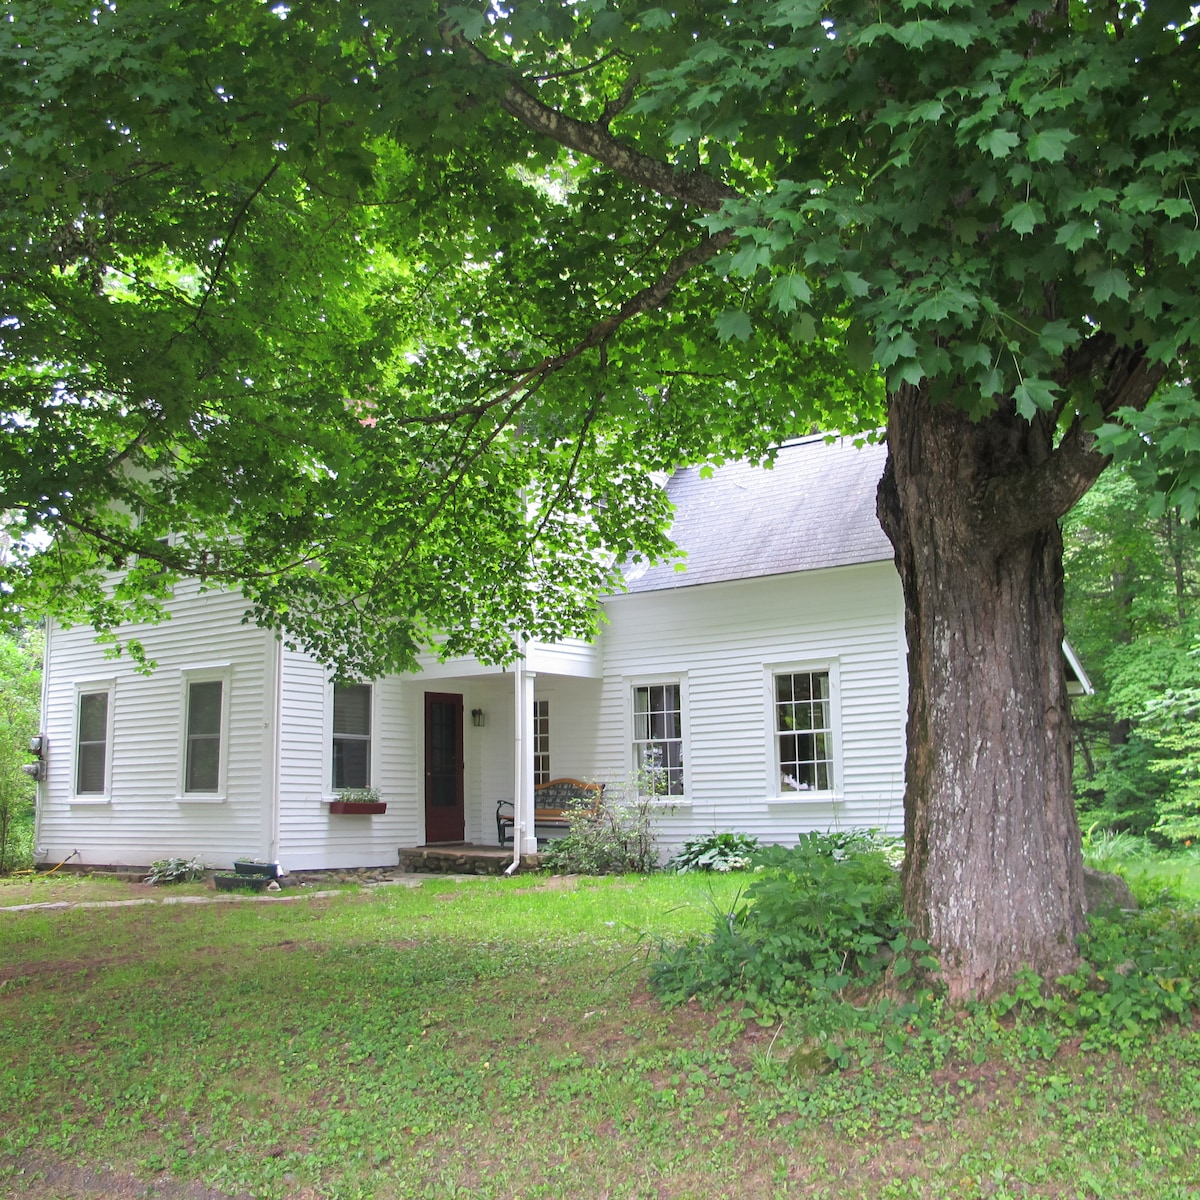 charming 3 bedroom home, former schoolhouse